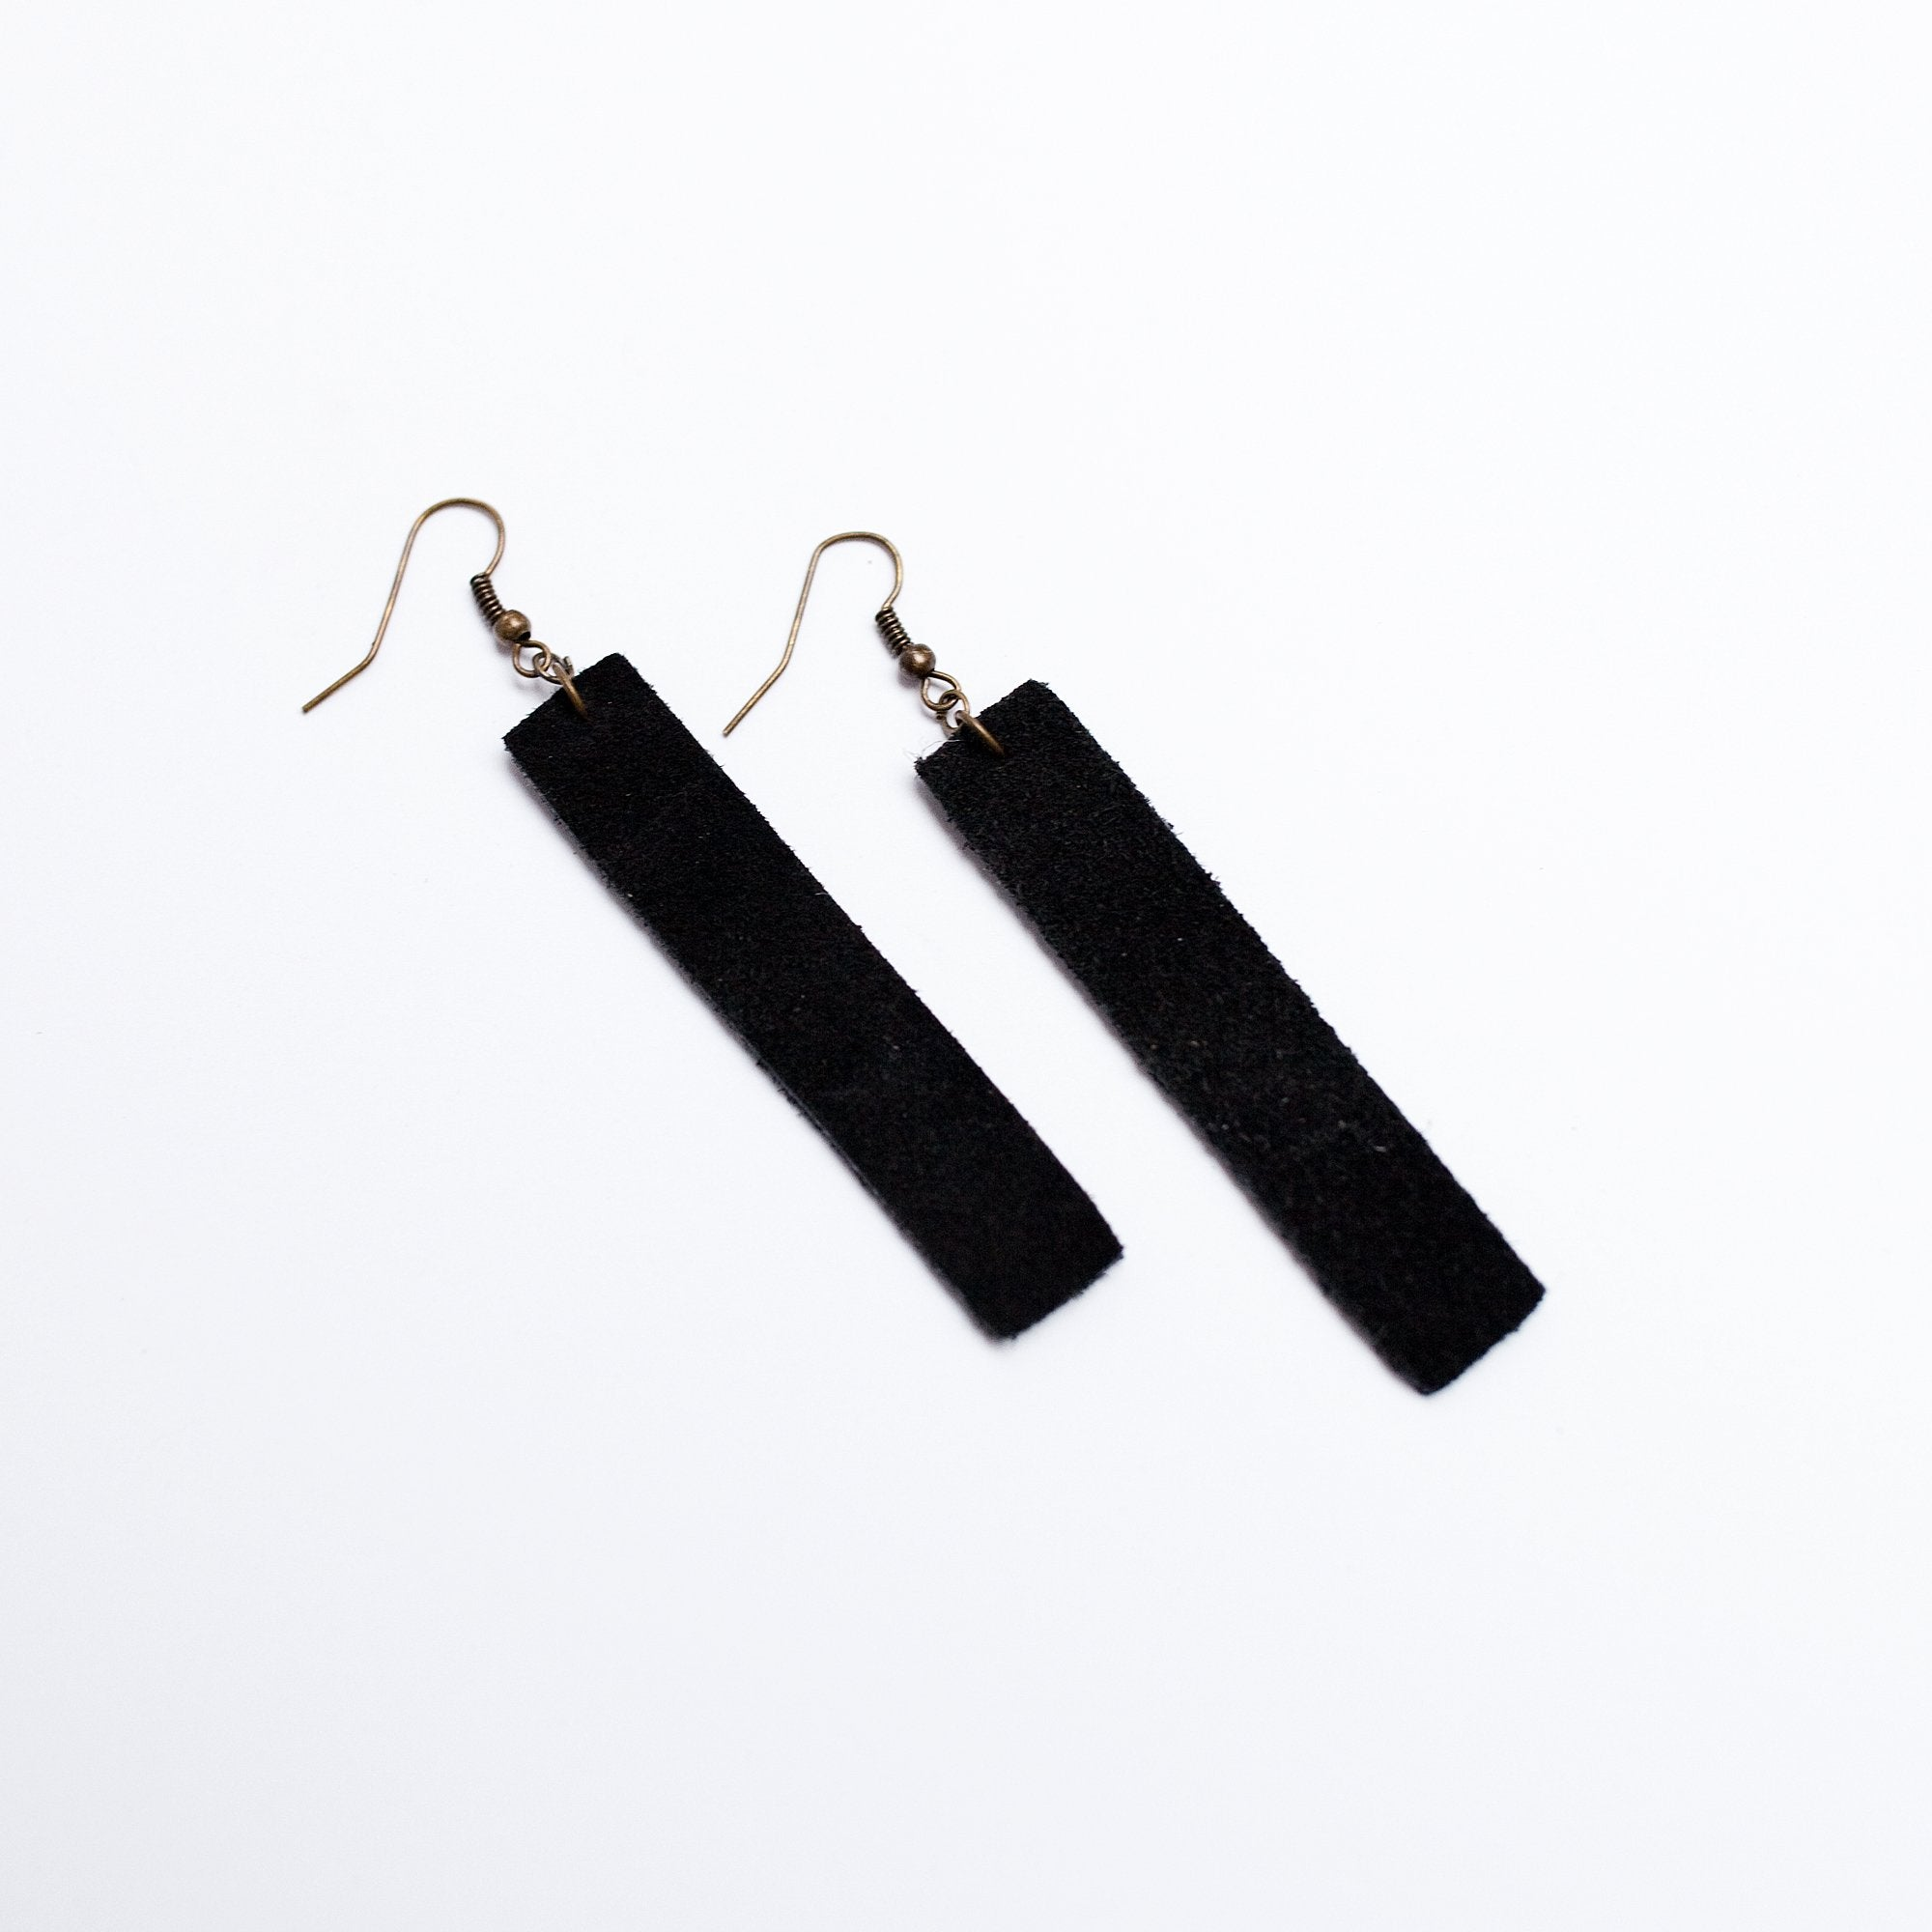 Suede Bar Earrings in Black - Newport Edge